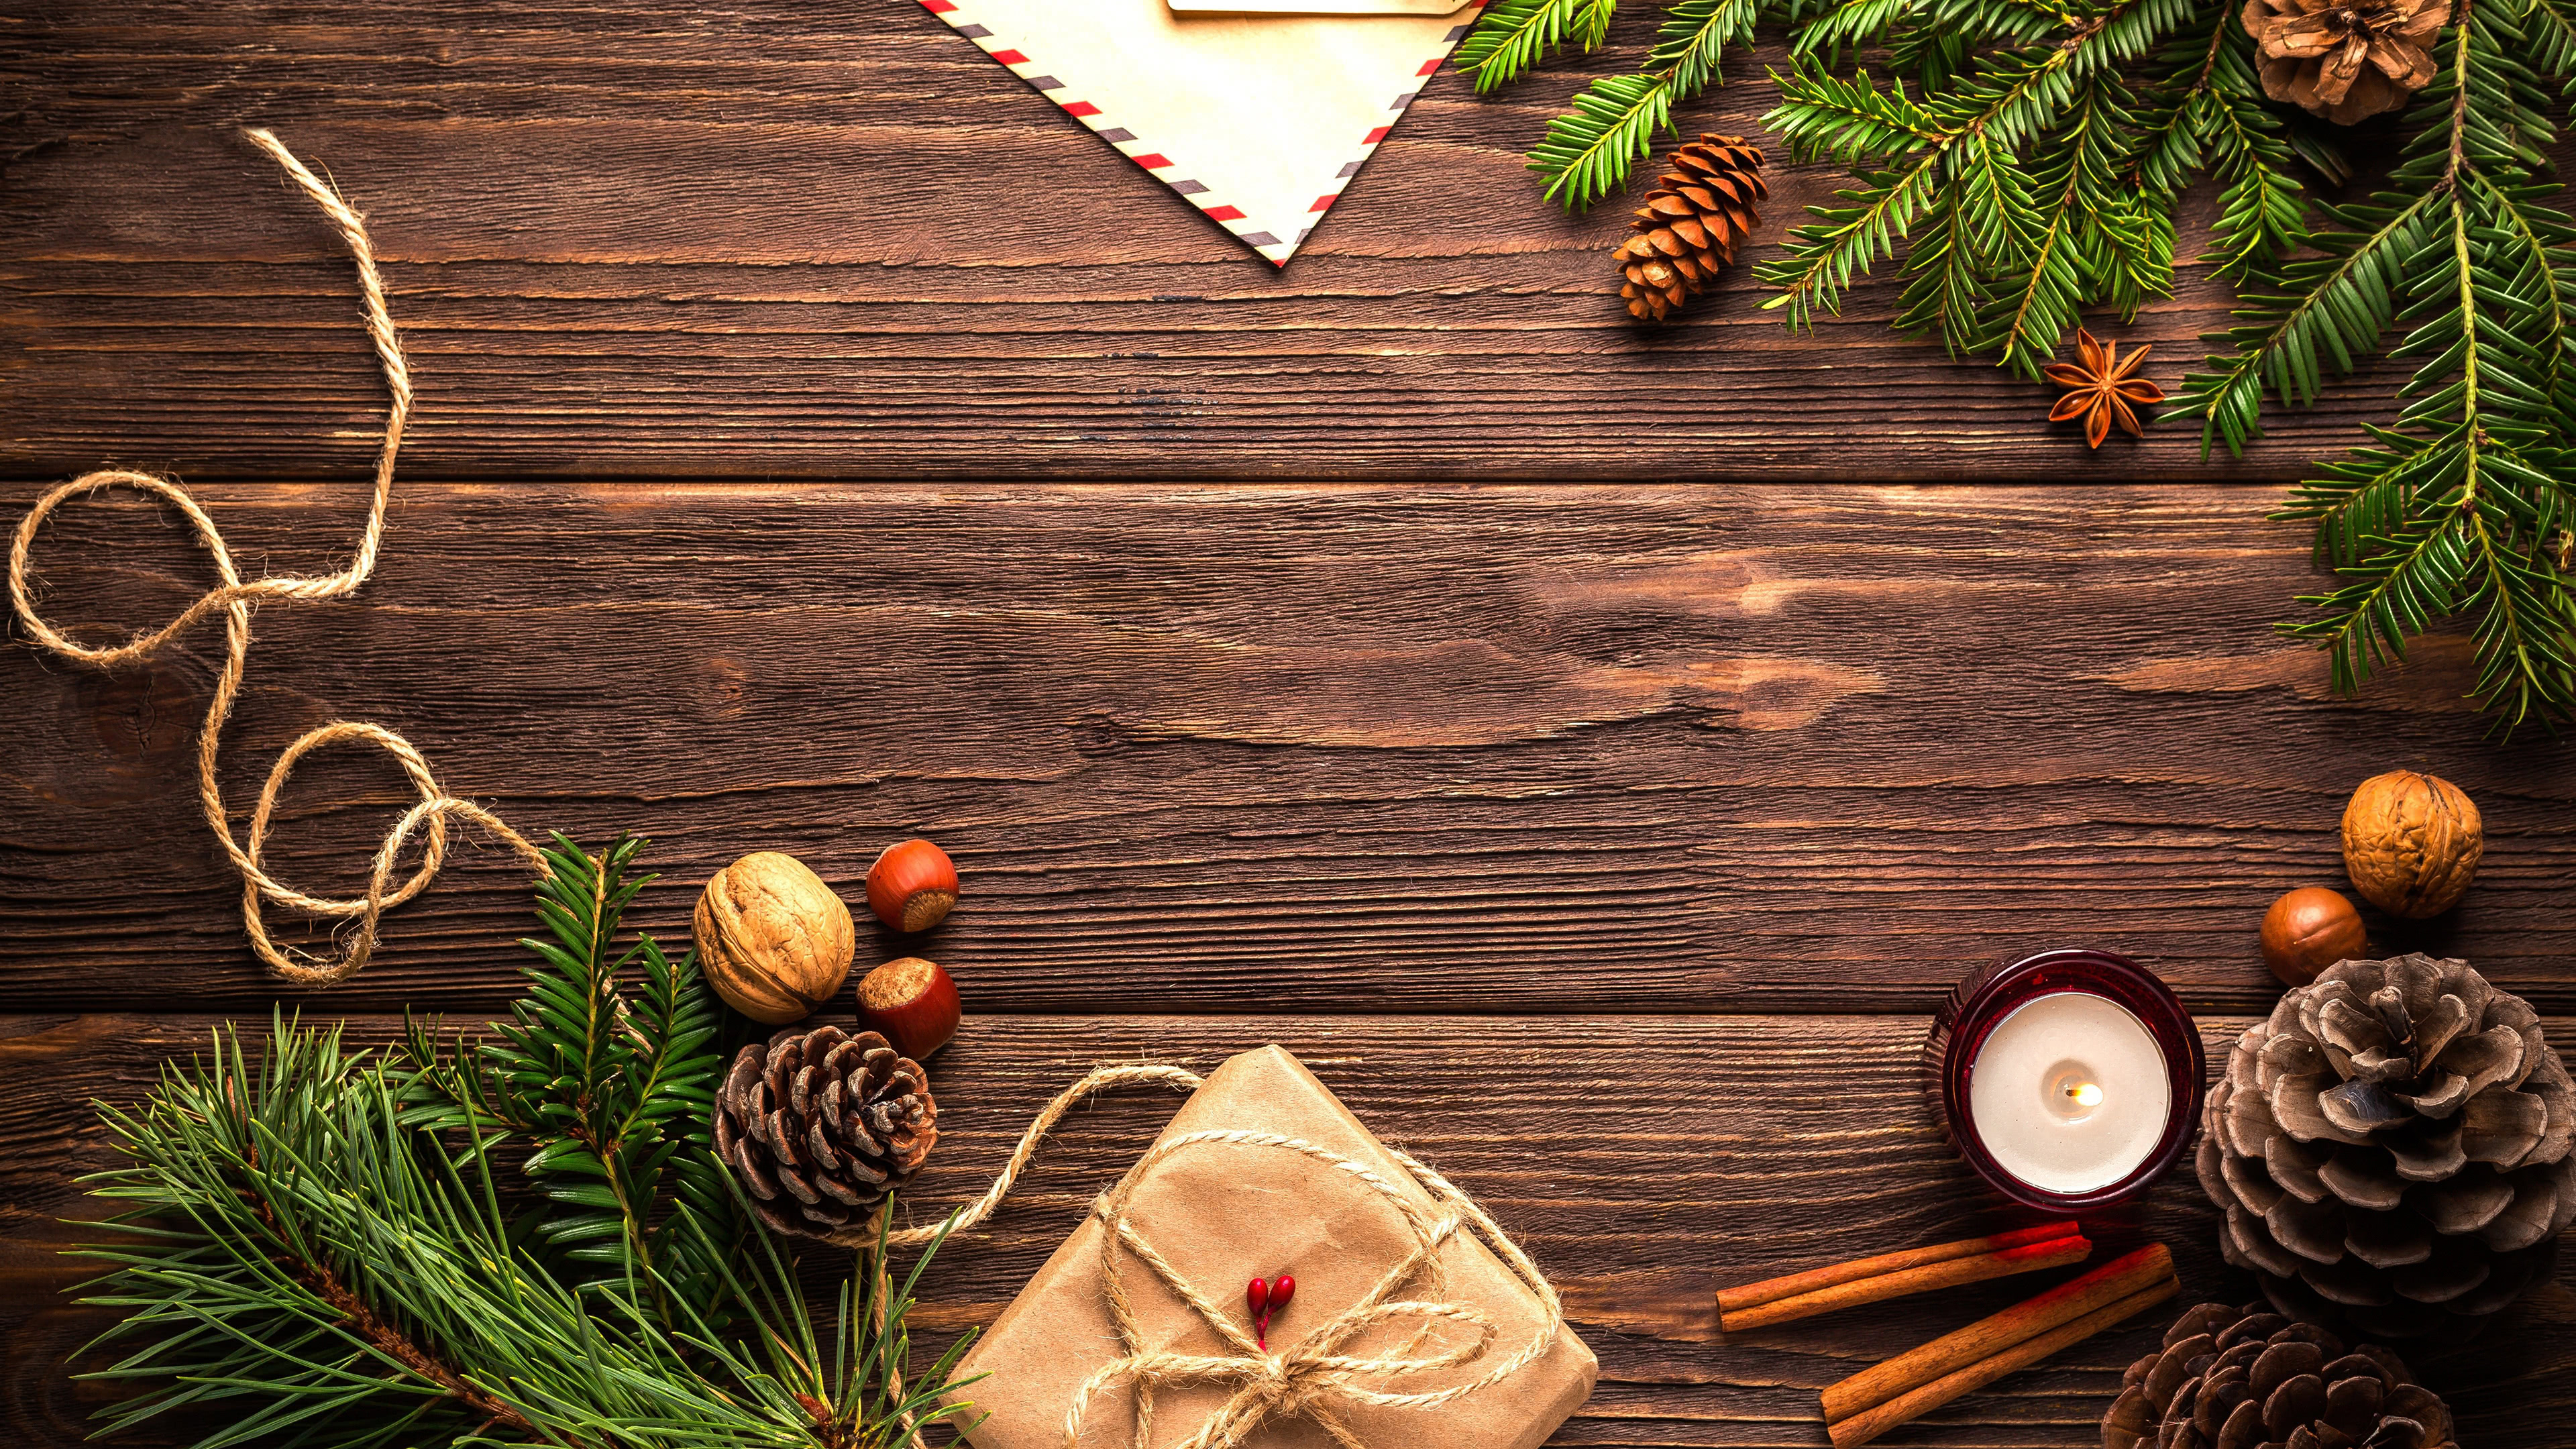 Wood Table Christmas Decorations Uhd 4k Wallpaper Pixelz